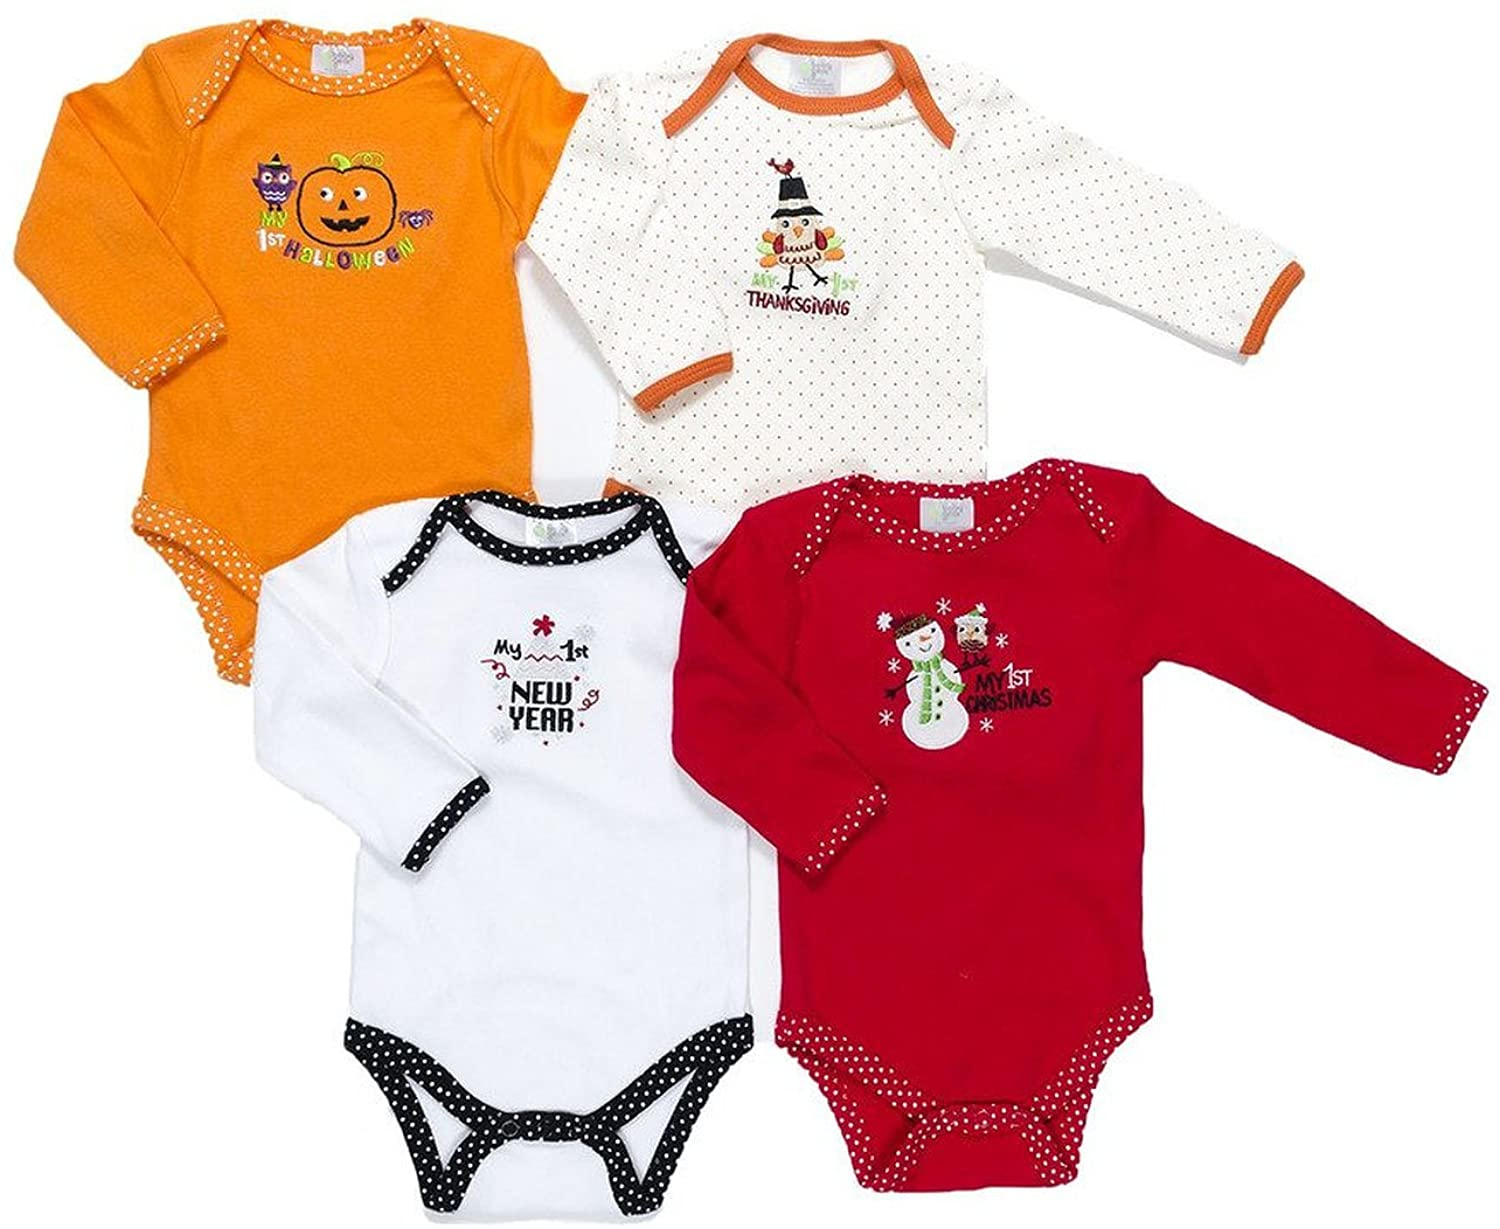 Baby Gear Unisex My 1st Holidays Grow With Me 4-Pack Bodysuit Set